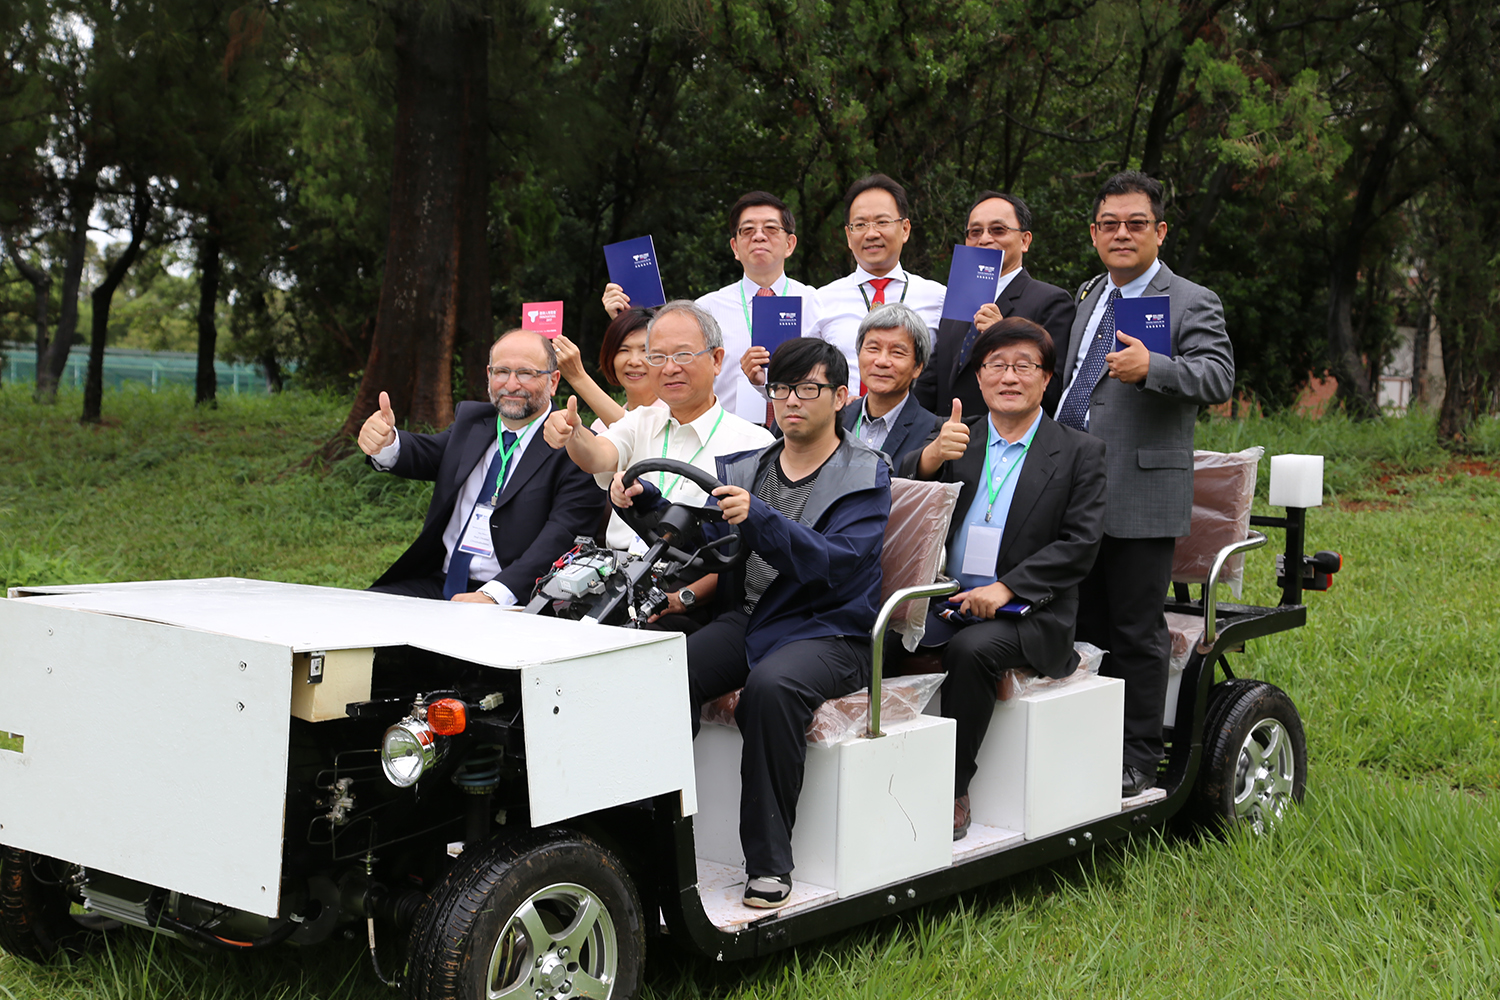 Electric car presentation; Tunghai Vice President Cheng-Tung Lin (front center), Dean Shu-Wei Lo (second to the right on the second row), and Chairman Cheng-Feng Huang of Tunghai Alumni Association (first right on the second row) with honorable guests.